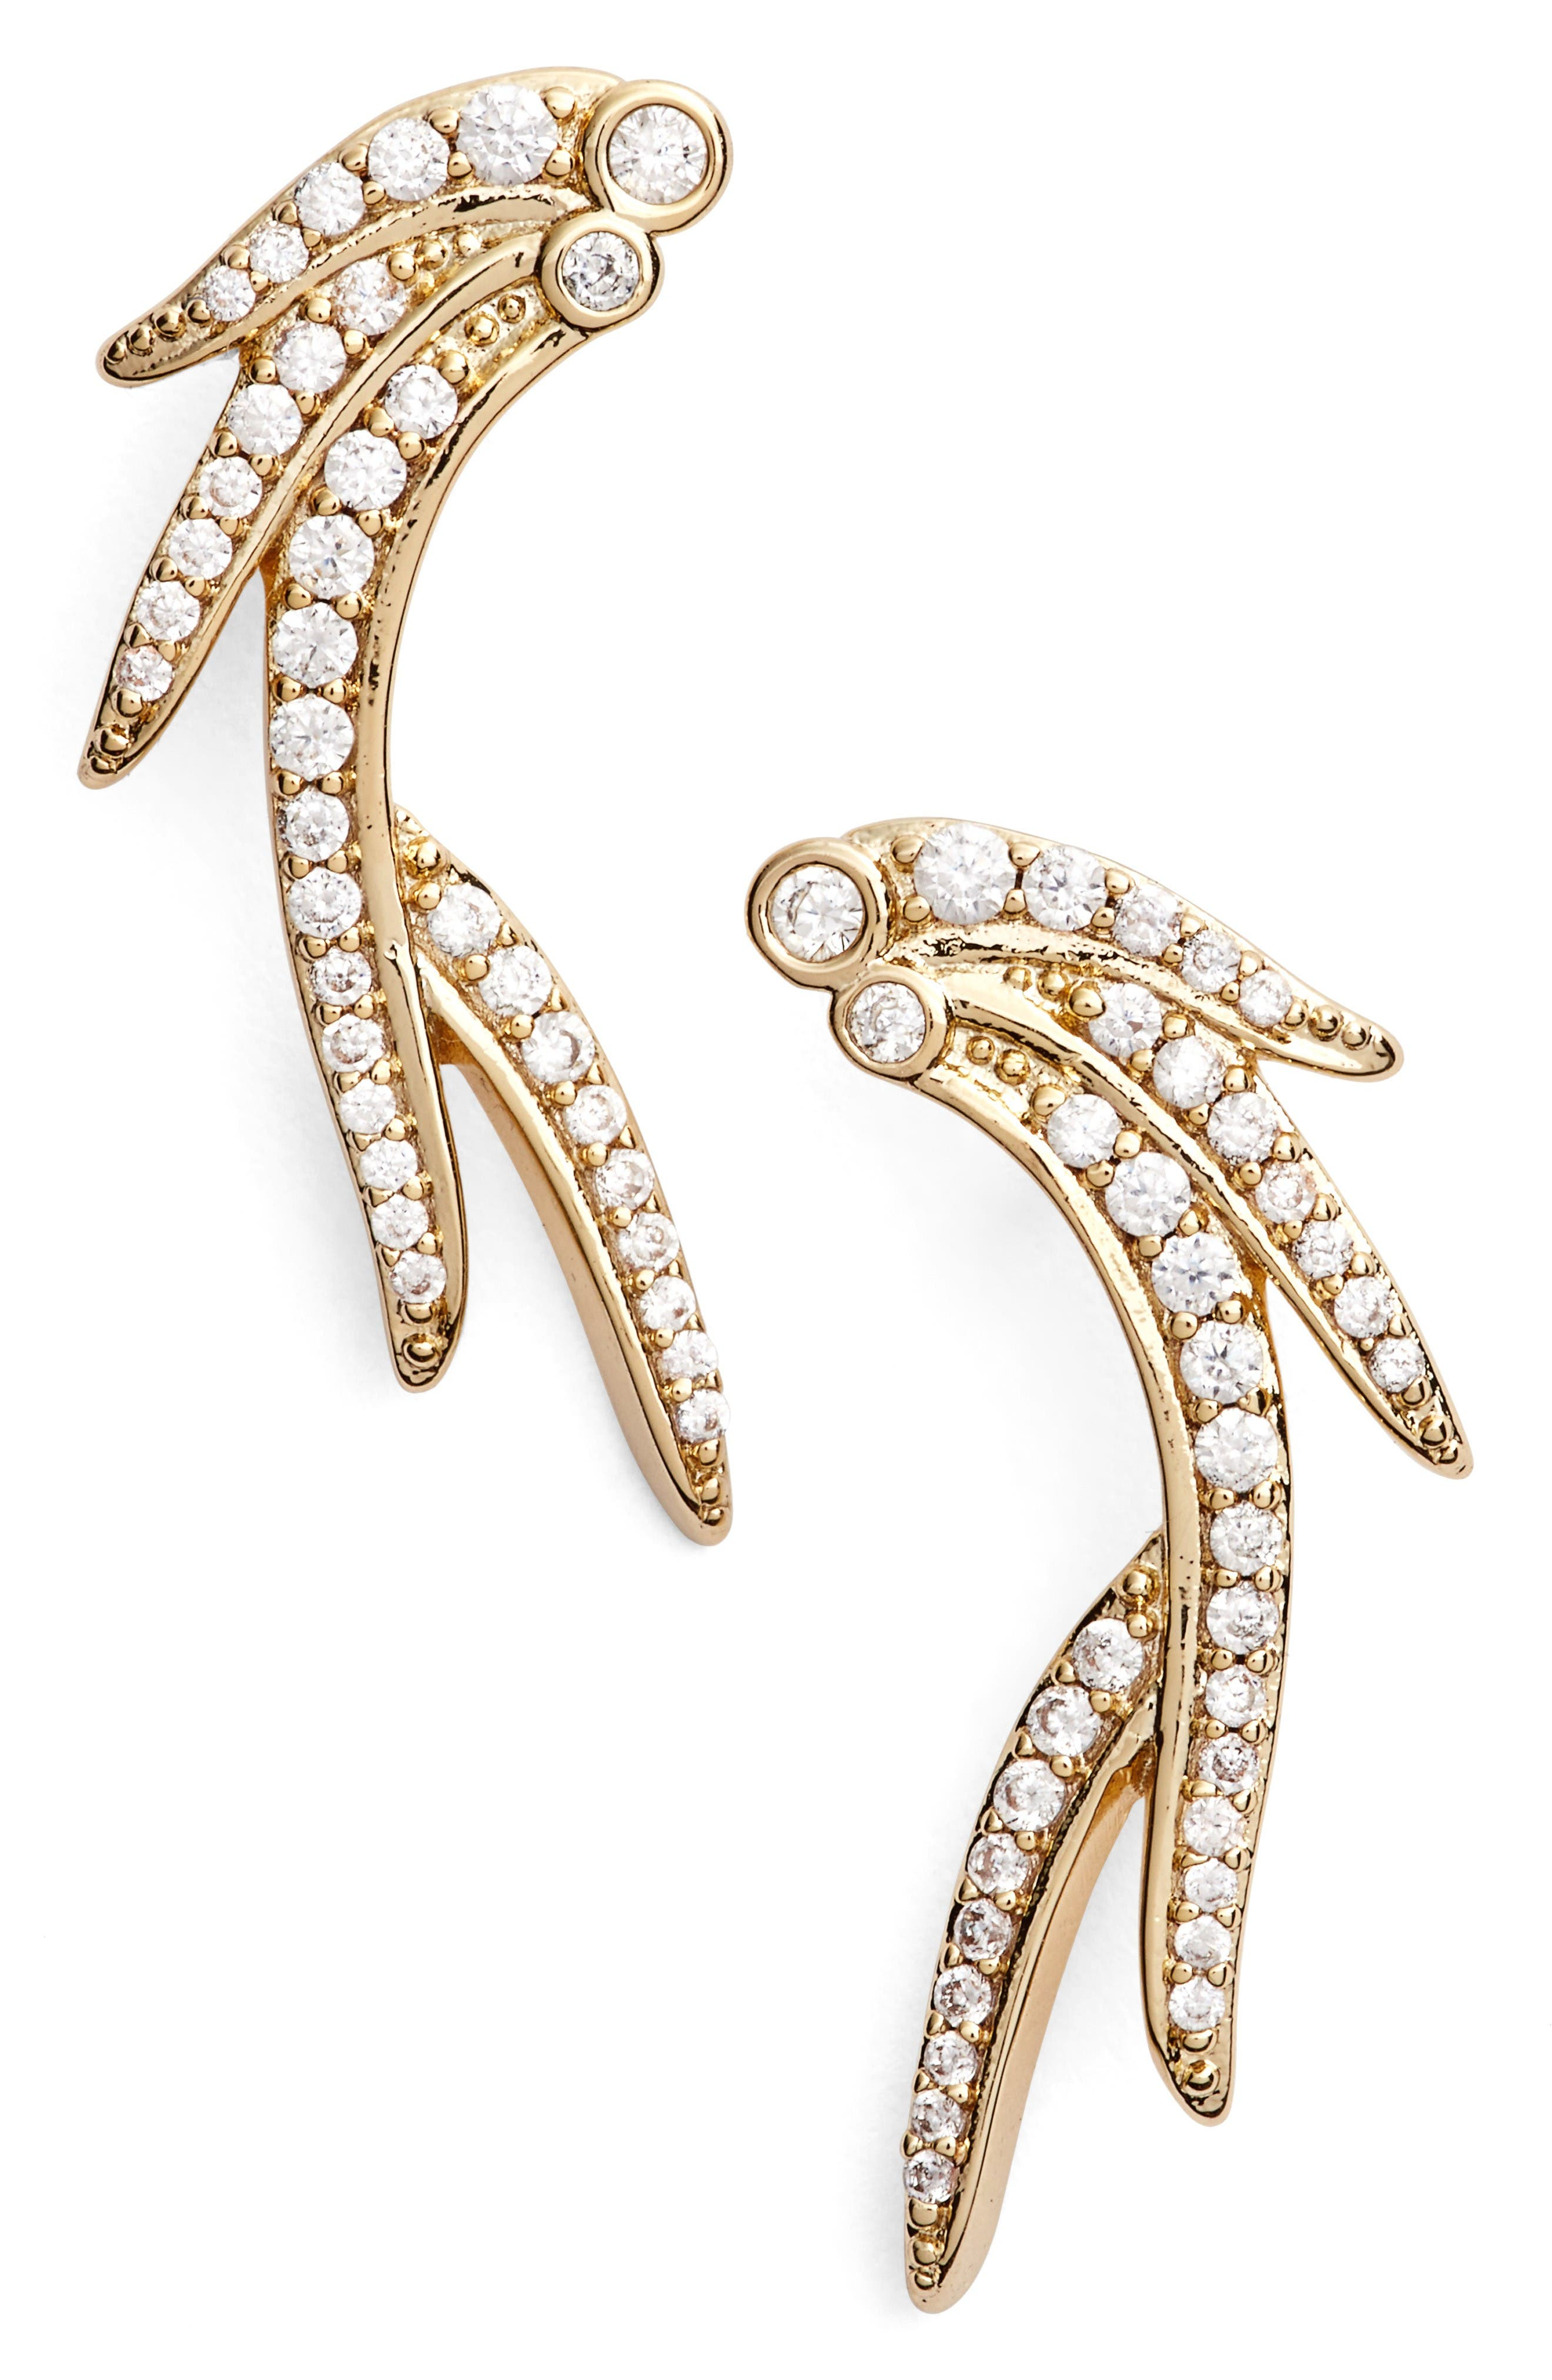 Kendra Scott Daphne Earrings